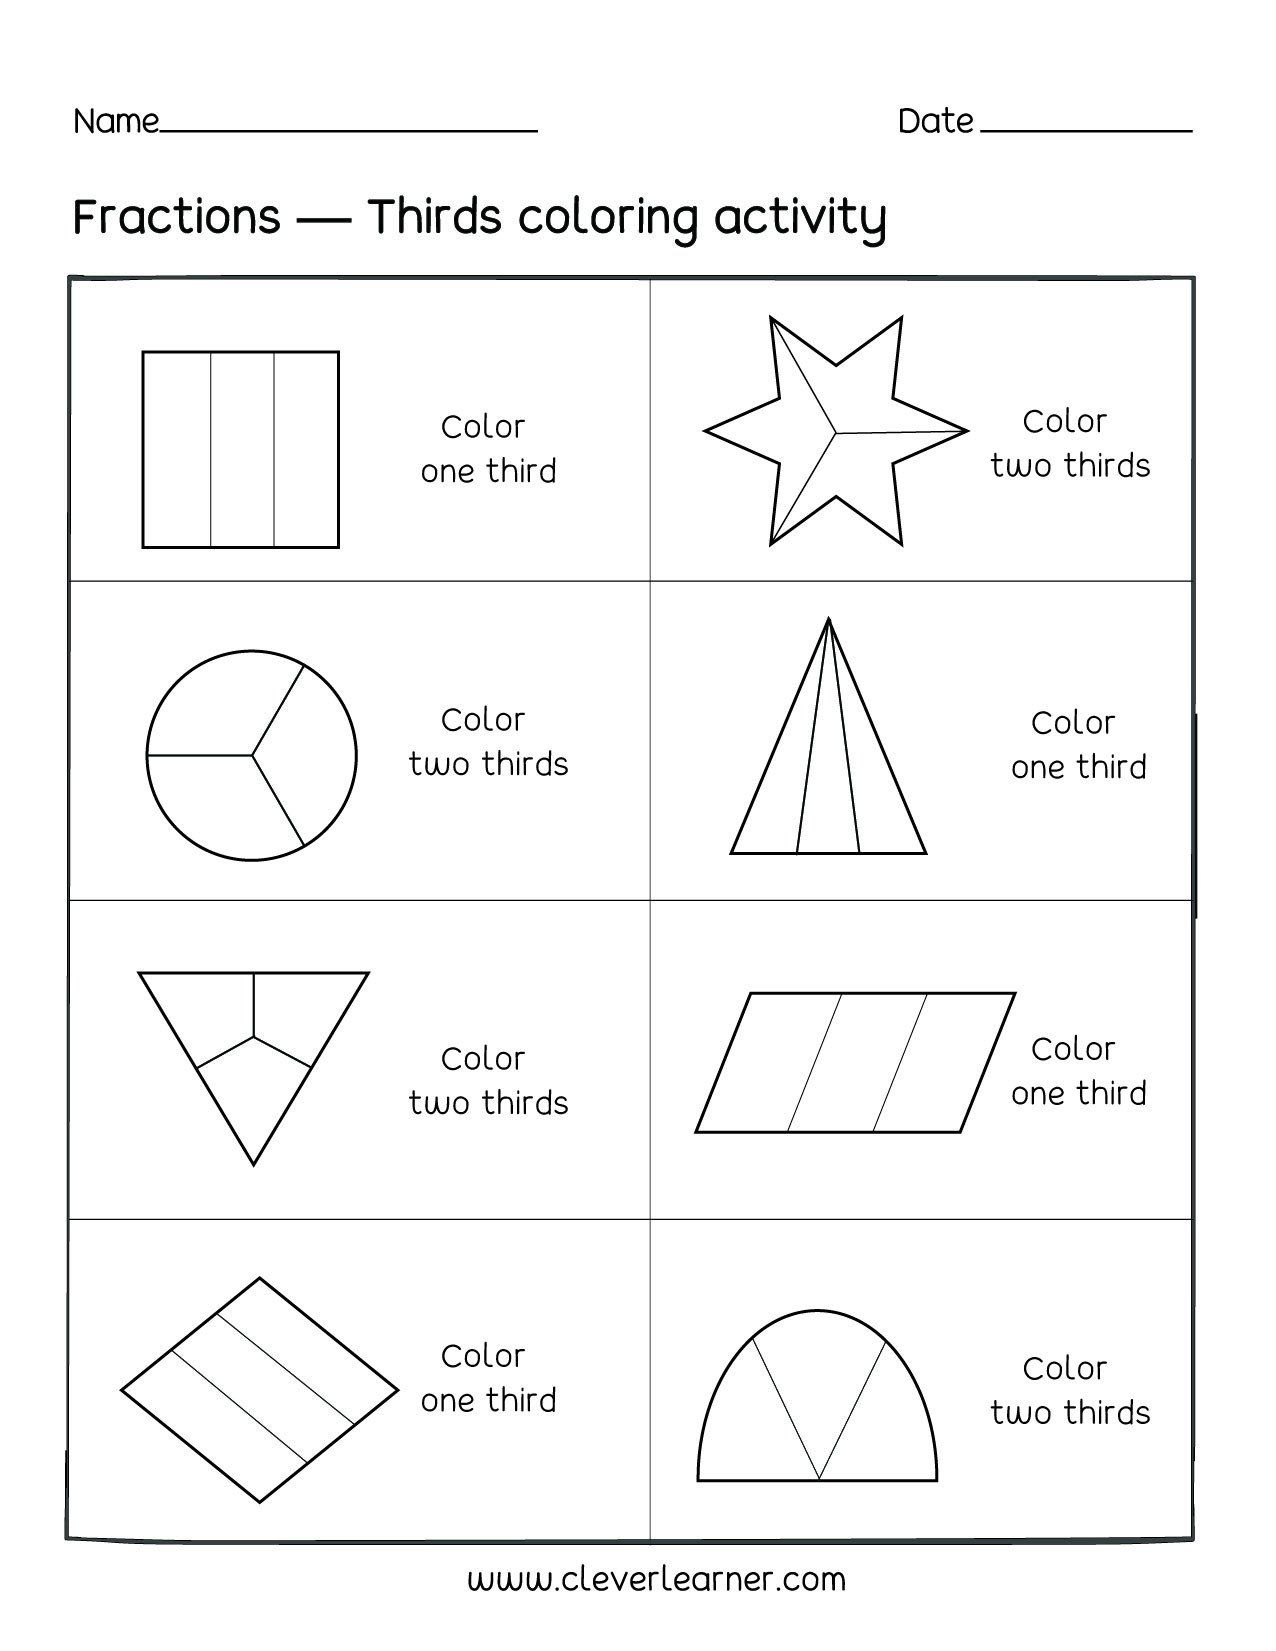 Fun Fraction Worksheets 4th Grade Fractionng Sheets Thirds